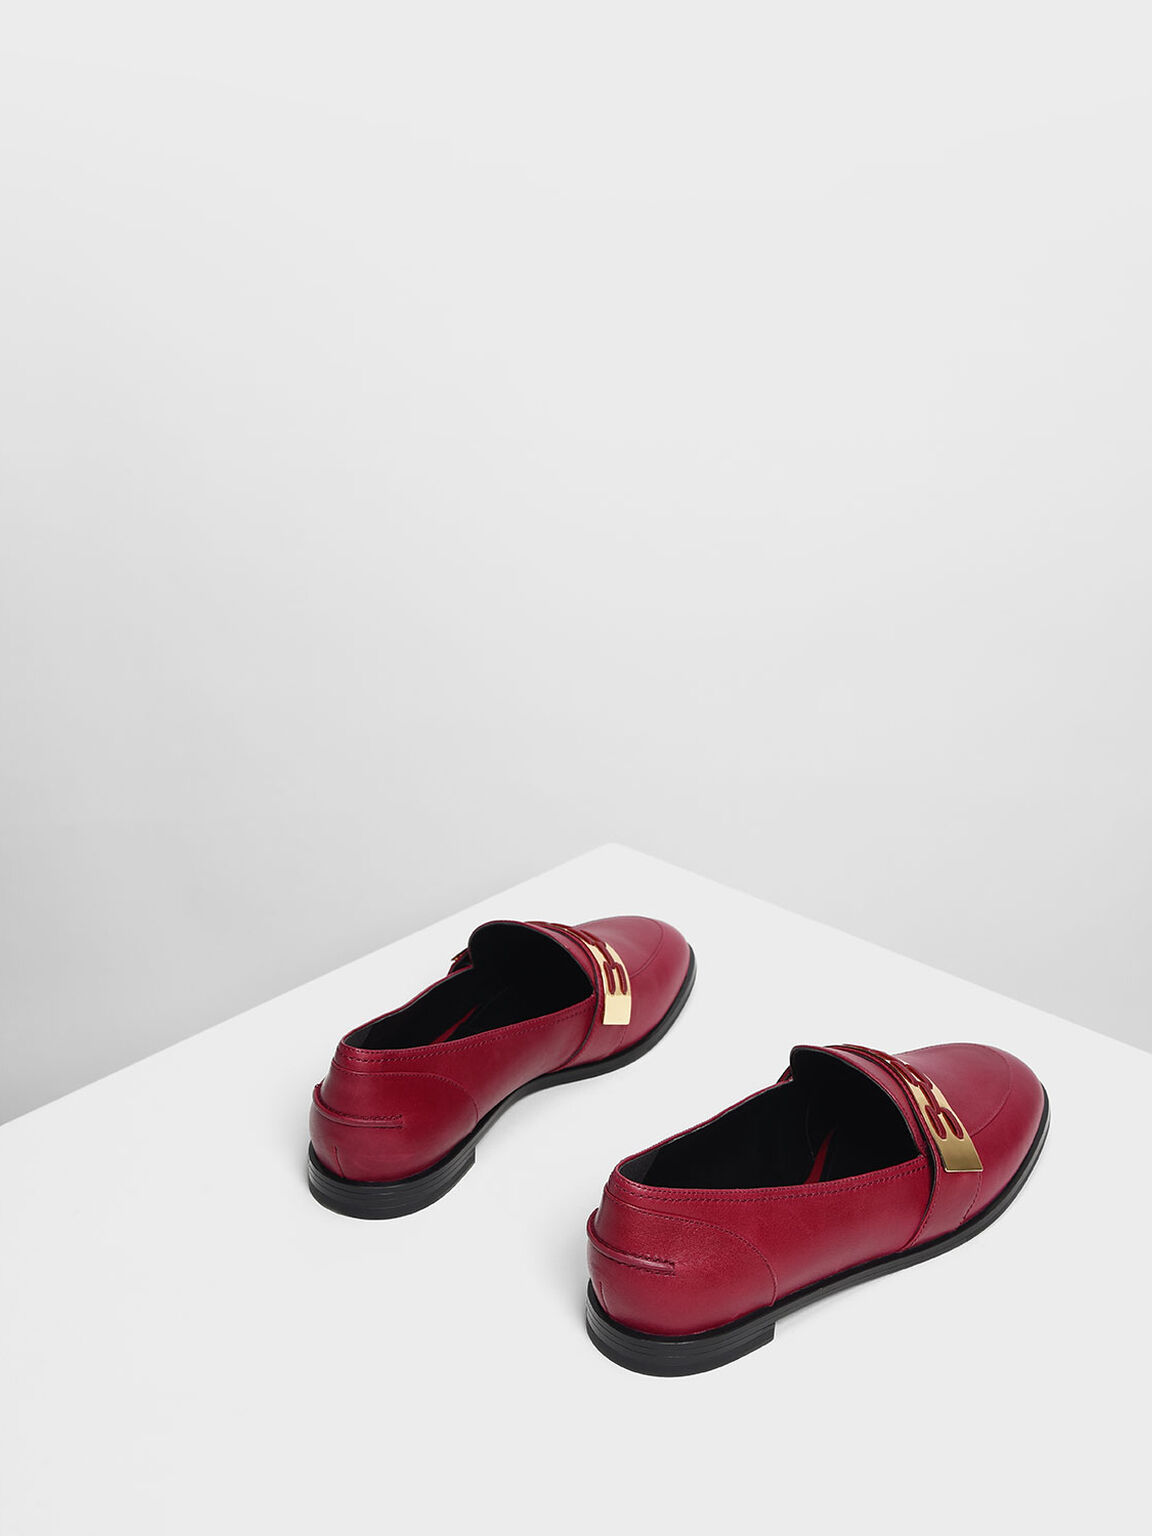 Metallic Accent Loafers, Burgundy, hi-res